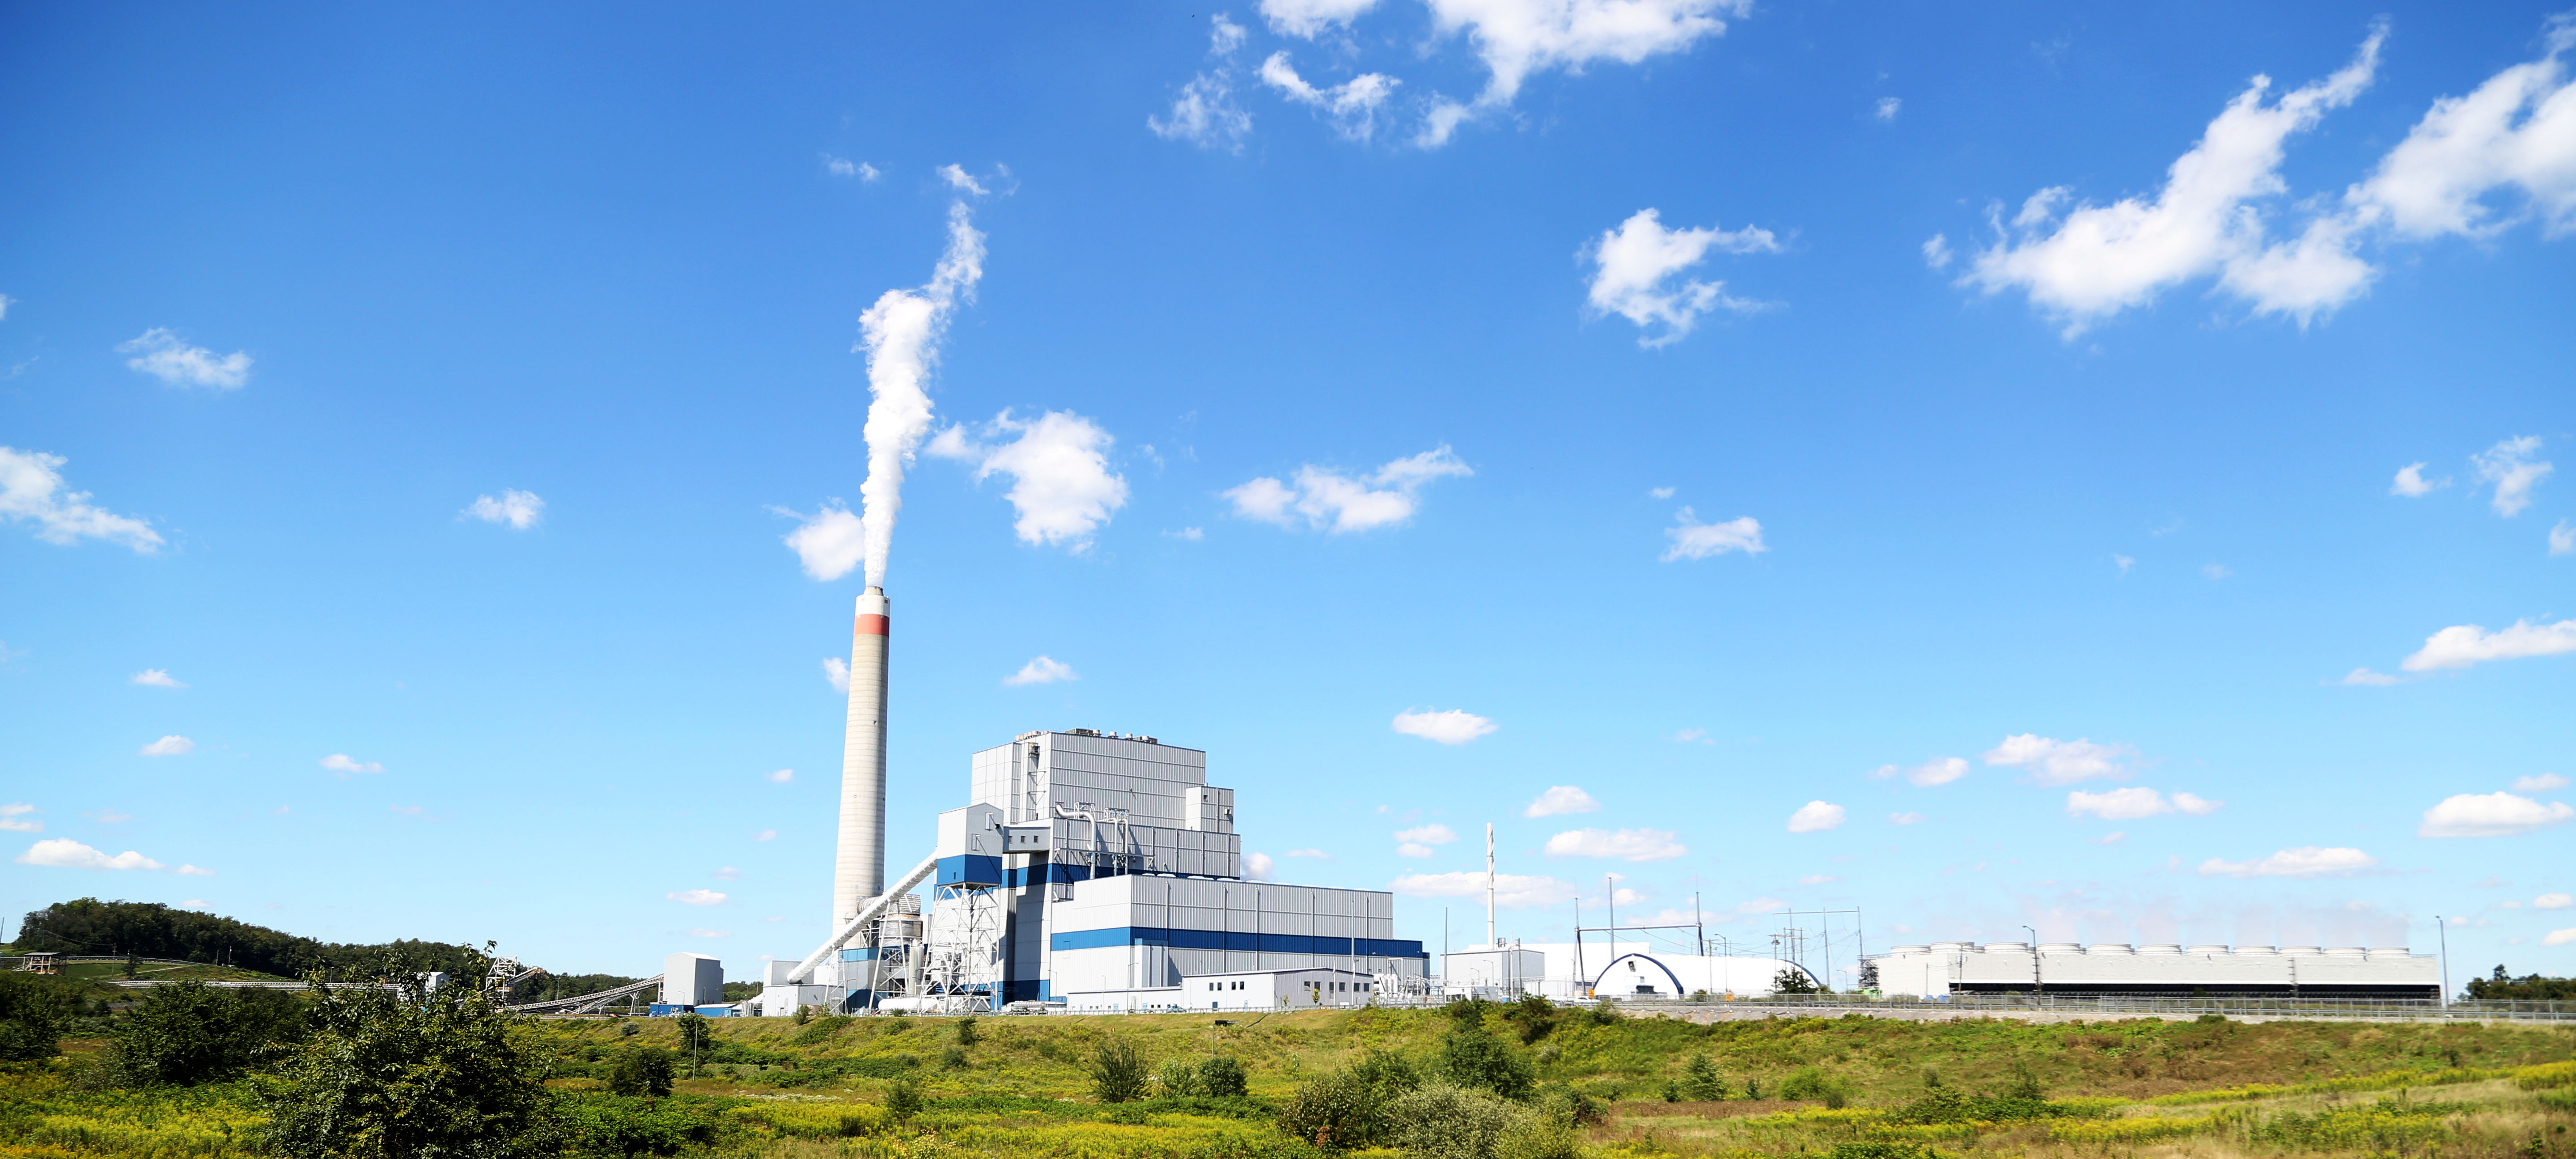 WVU to conduct mercial scale research of clean tech for coal